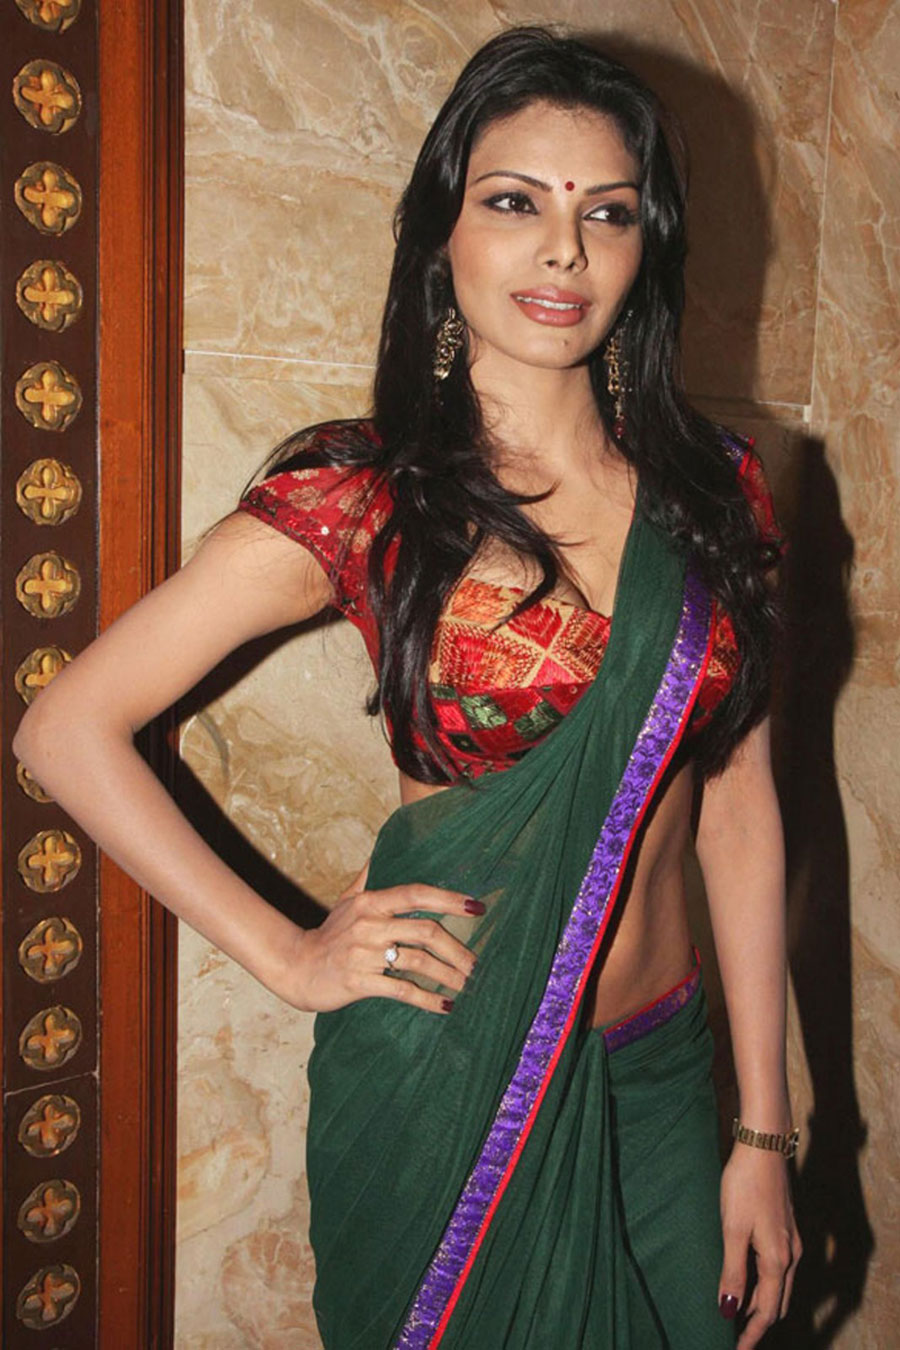 sherlyn chopra in saree hot images